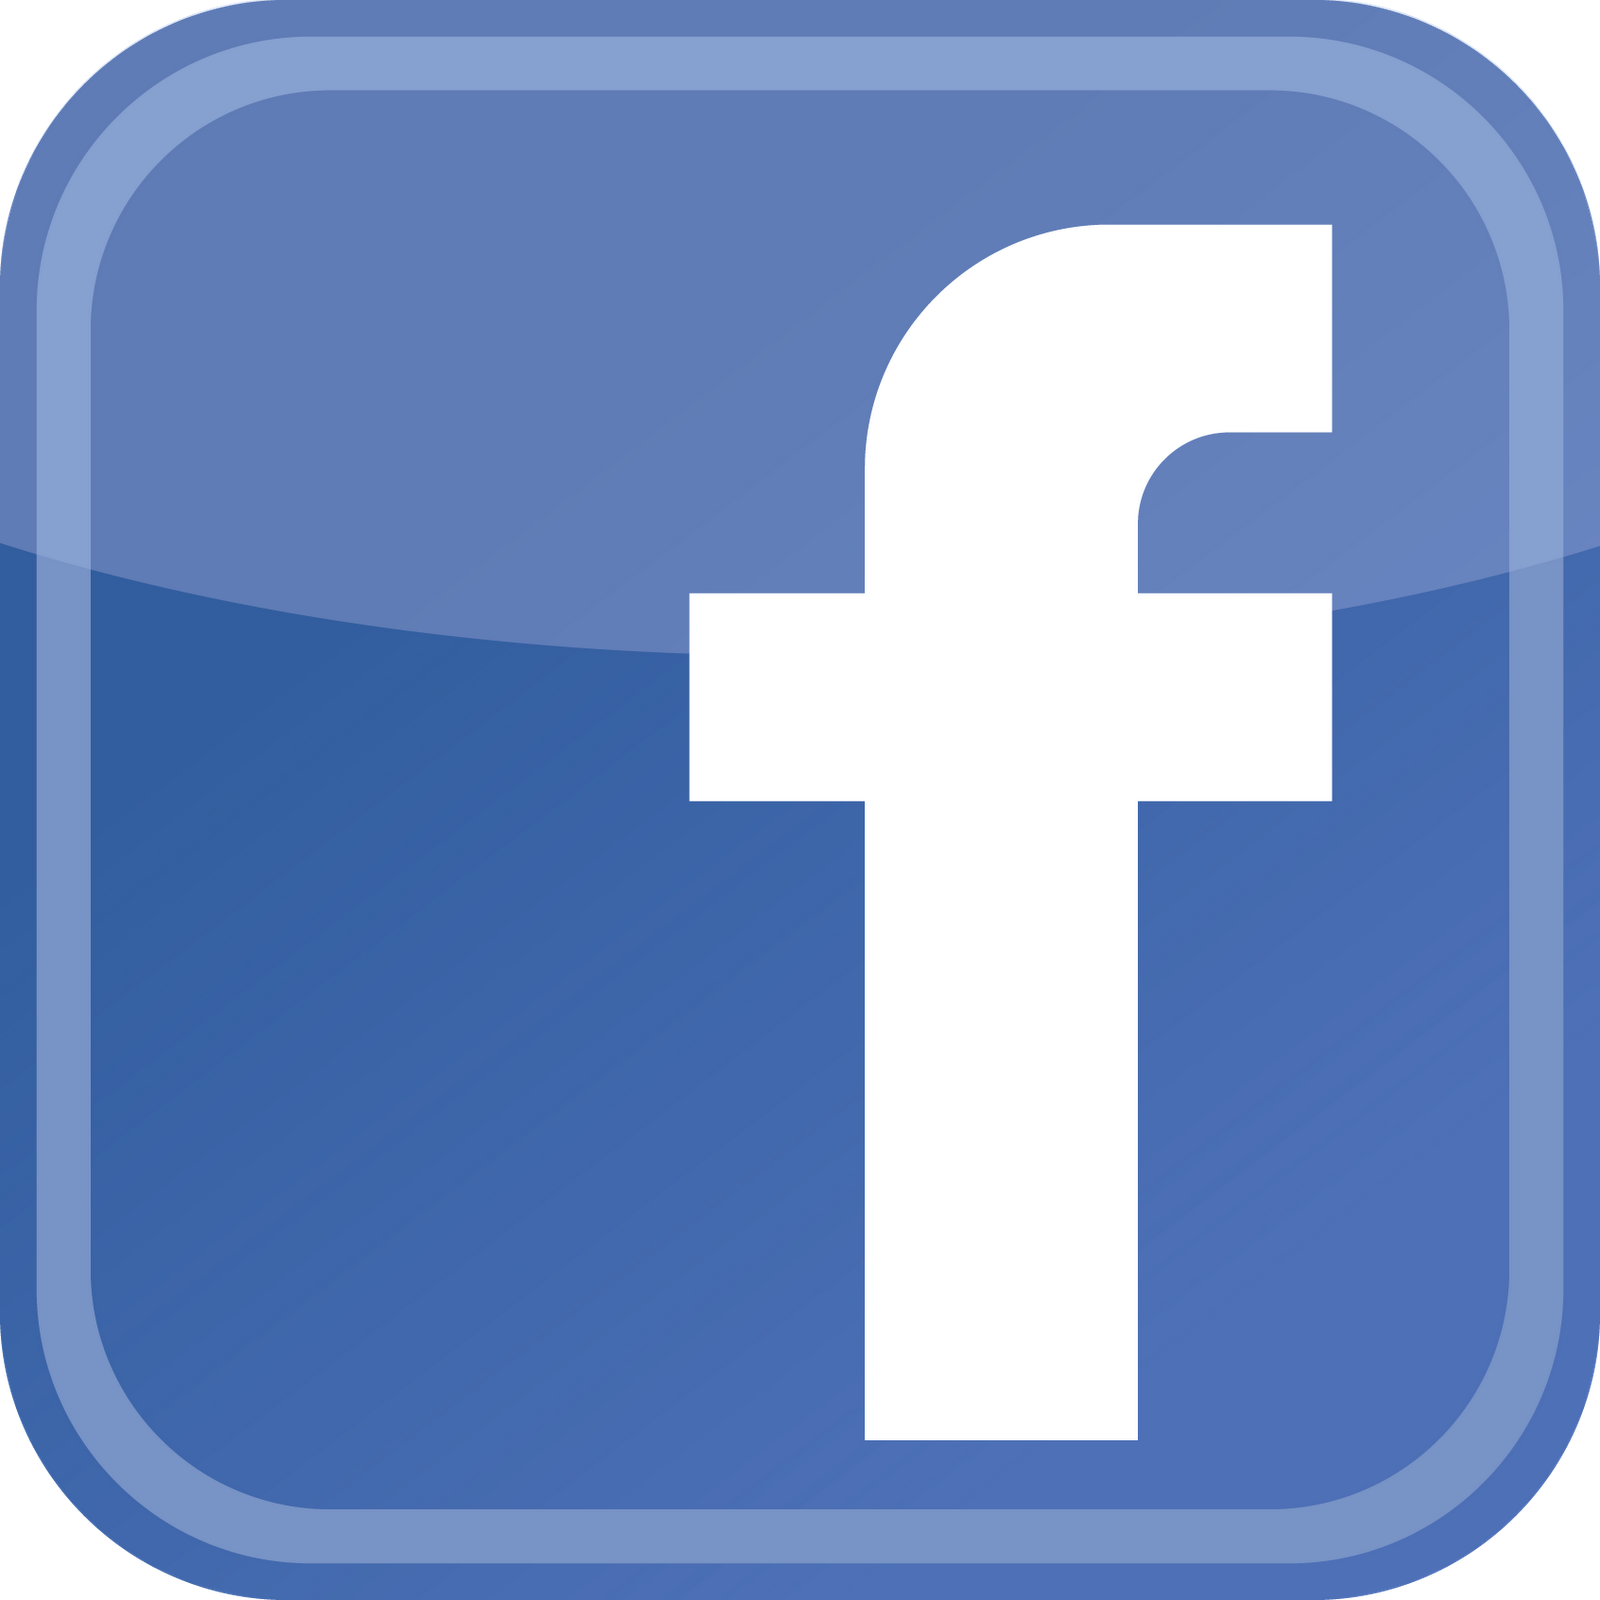 Facebook LOGO Transparent PNG Images, Free Logo Facebook.